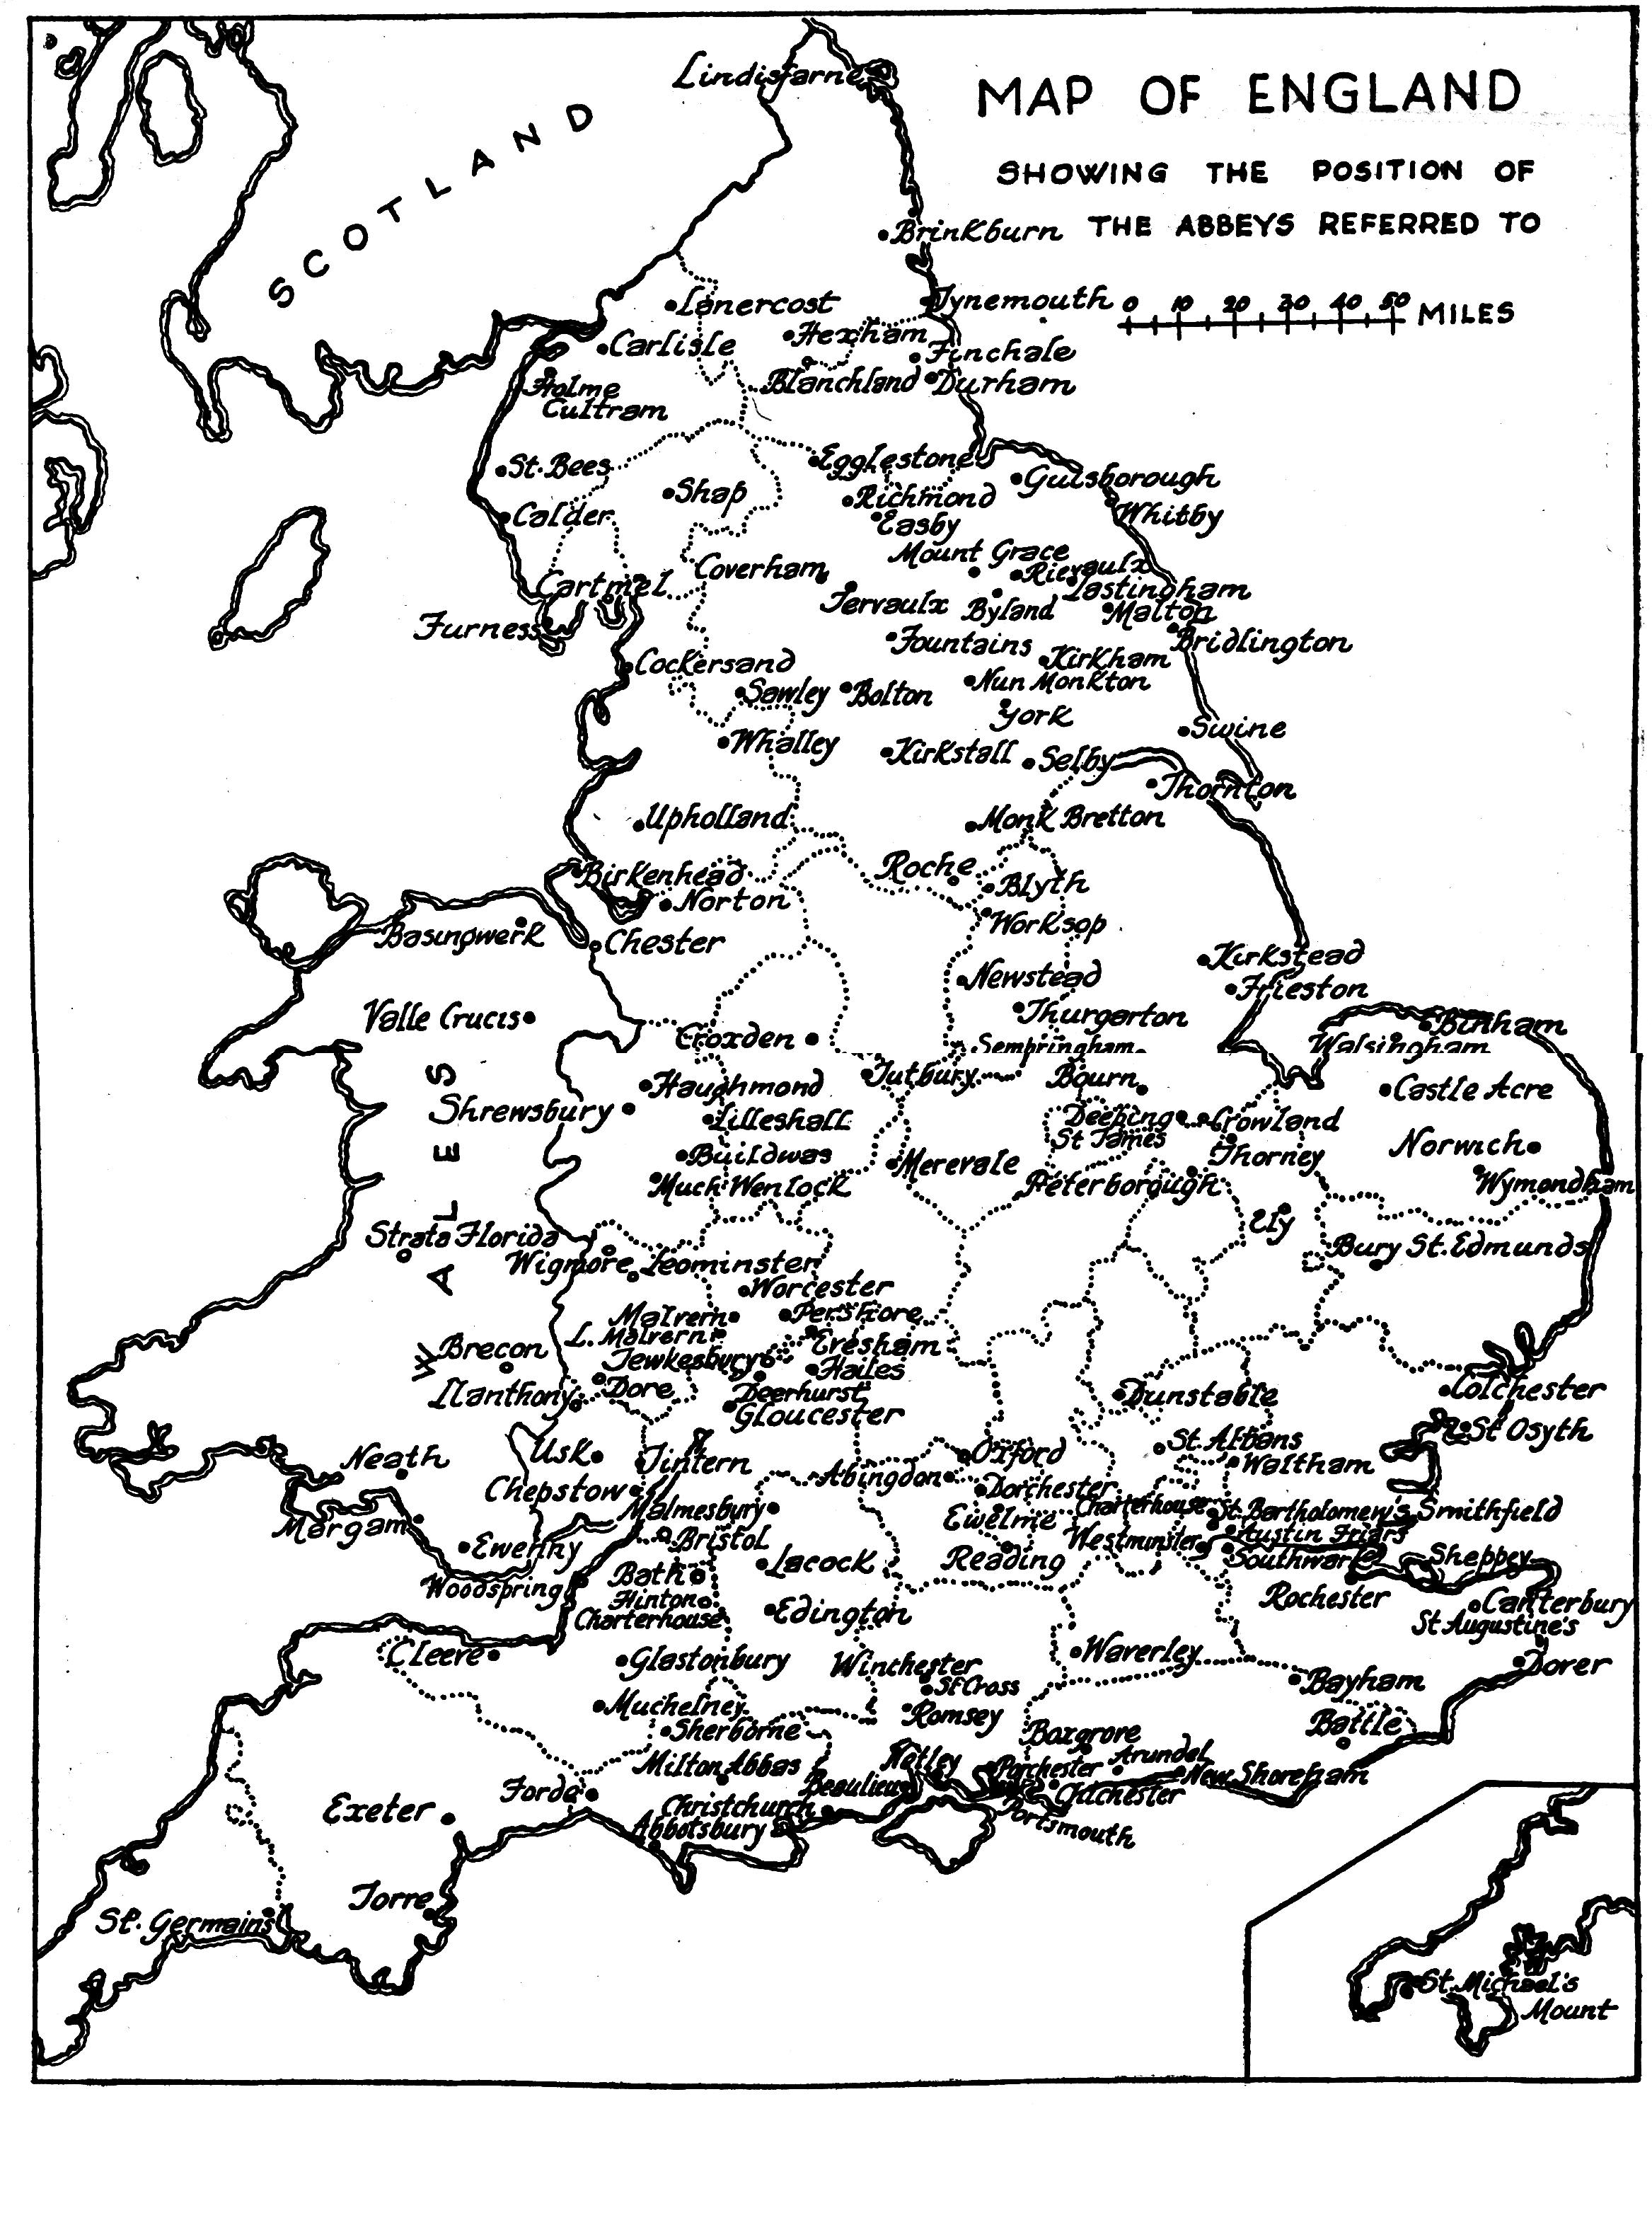 British Maps Home Page